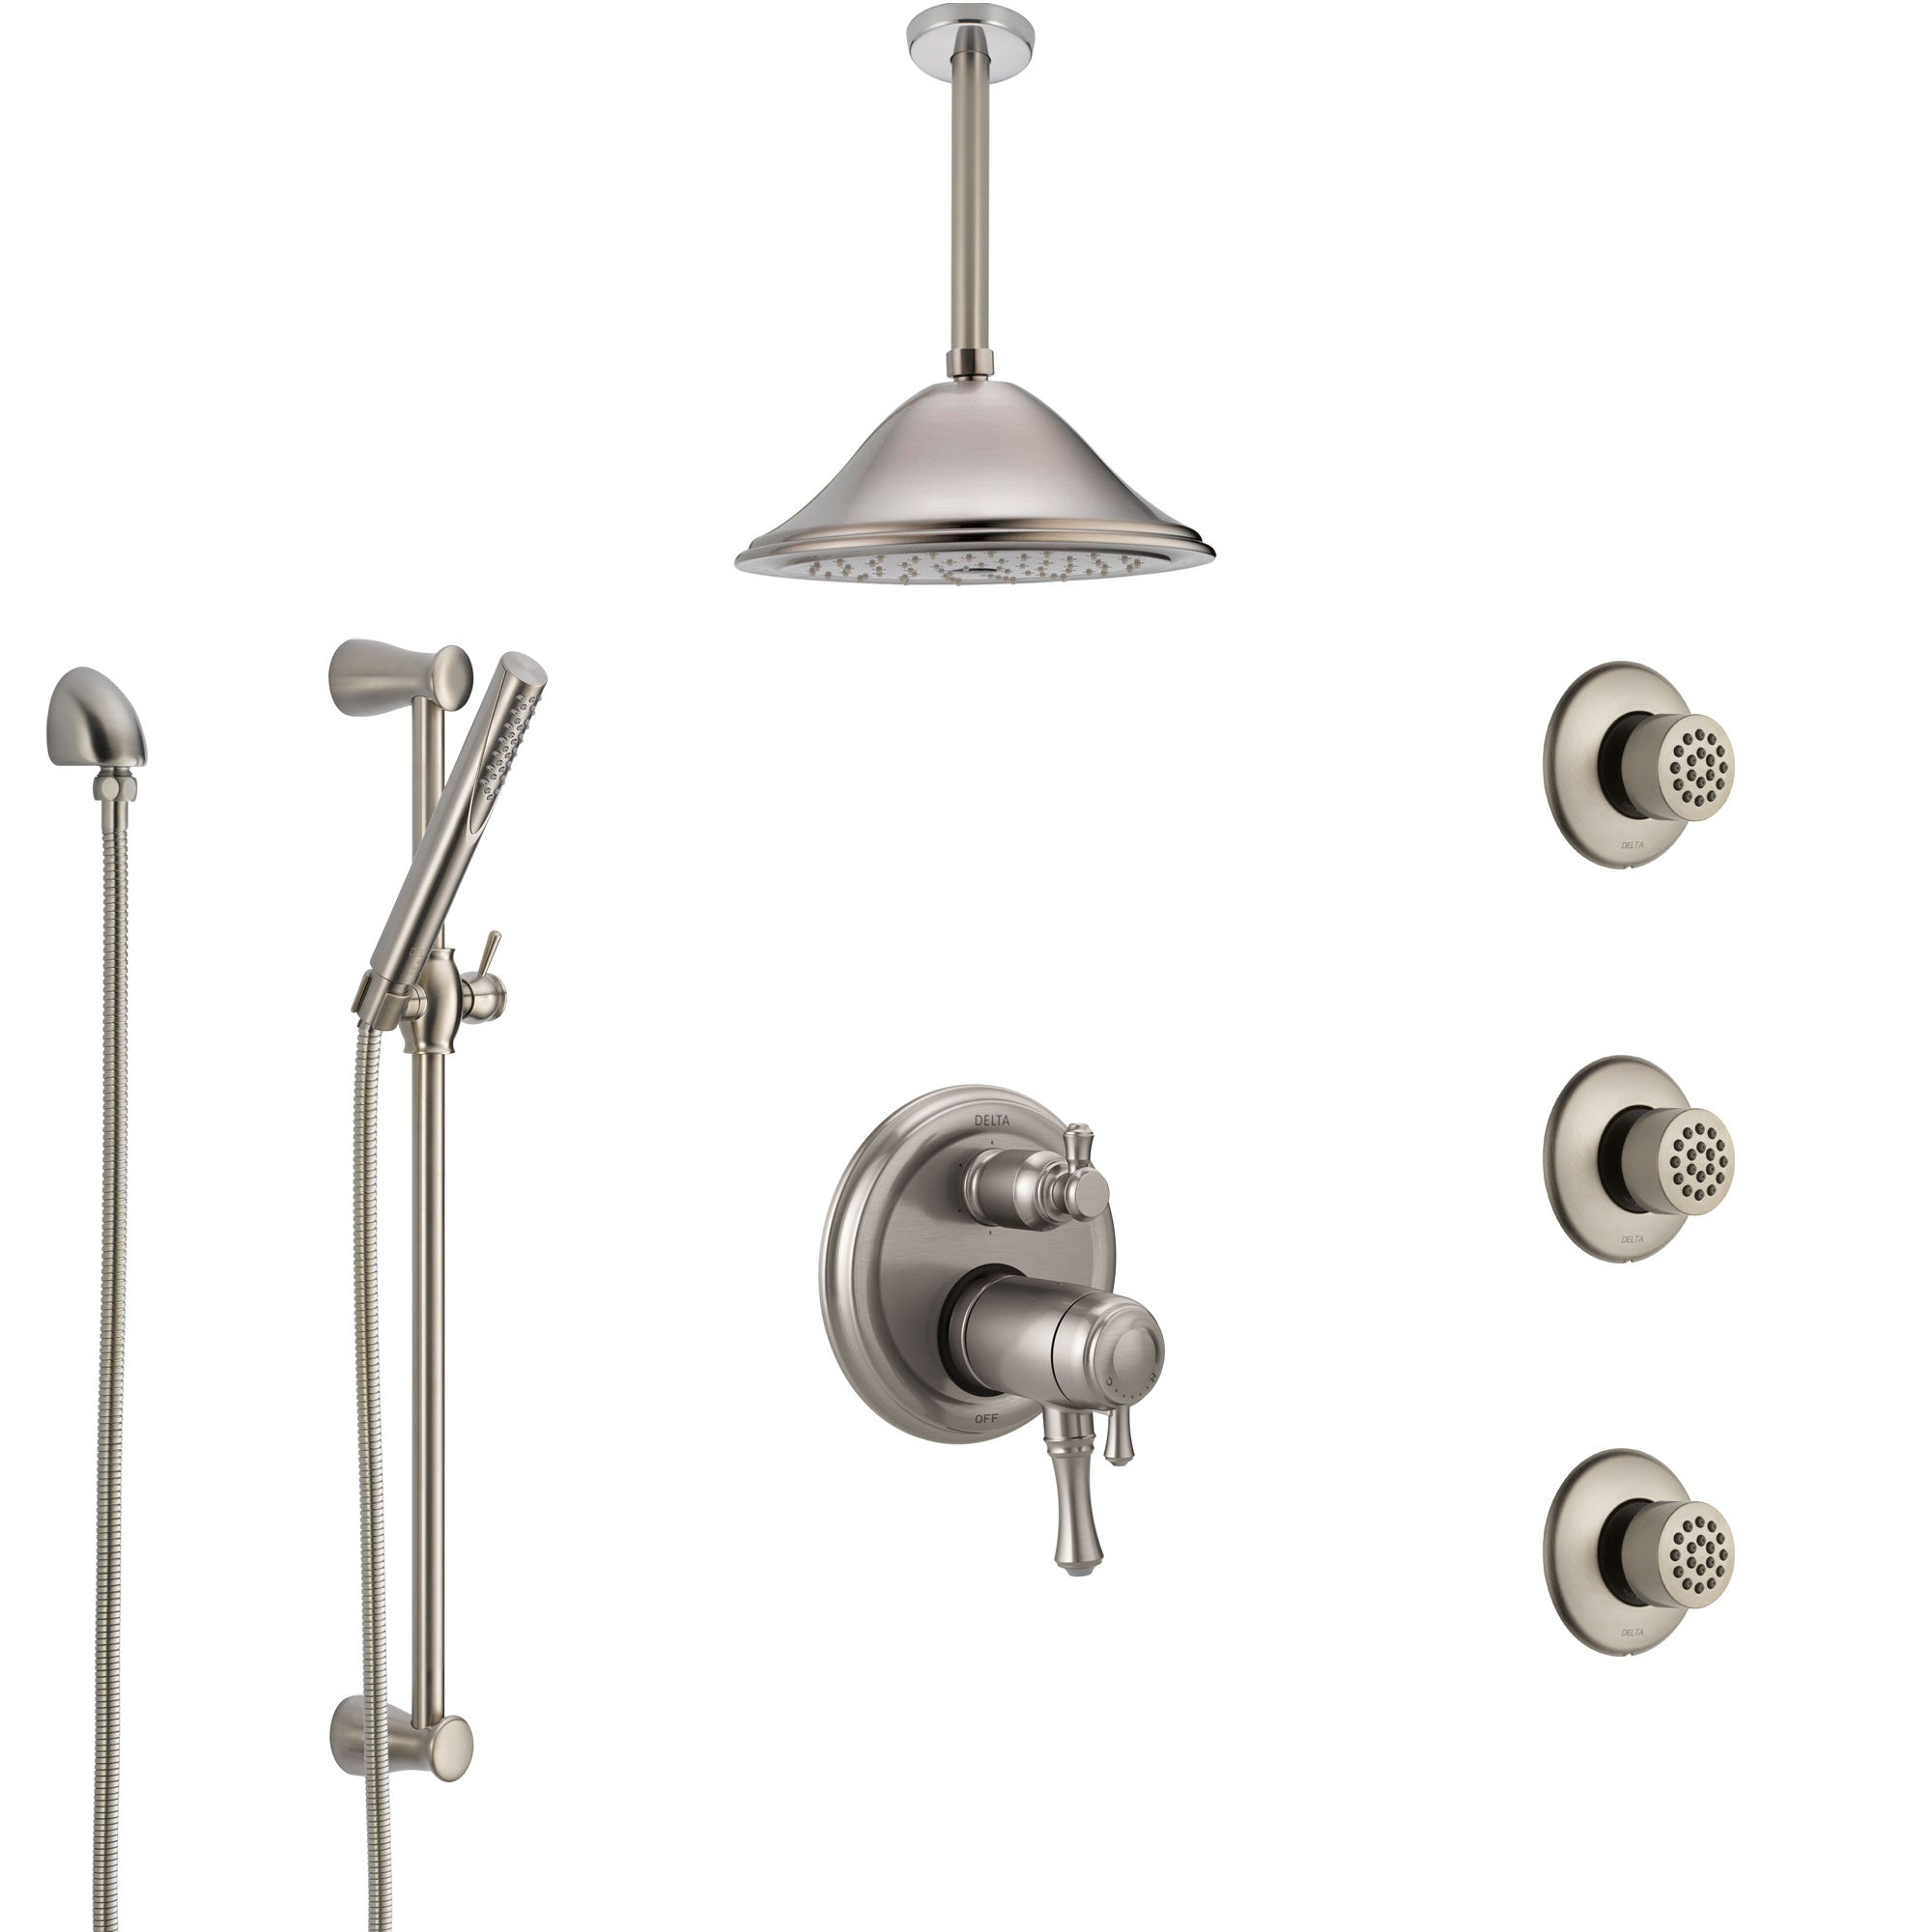 Delta Cassidy Dual Thermostatic Control Stainless Steel Finish Shower System, Ceiling Showerhead, 3 Body Jets, Hand Spray SS27T997SS6